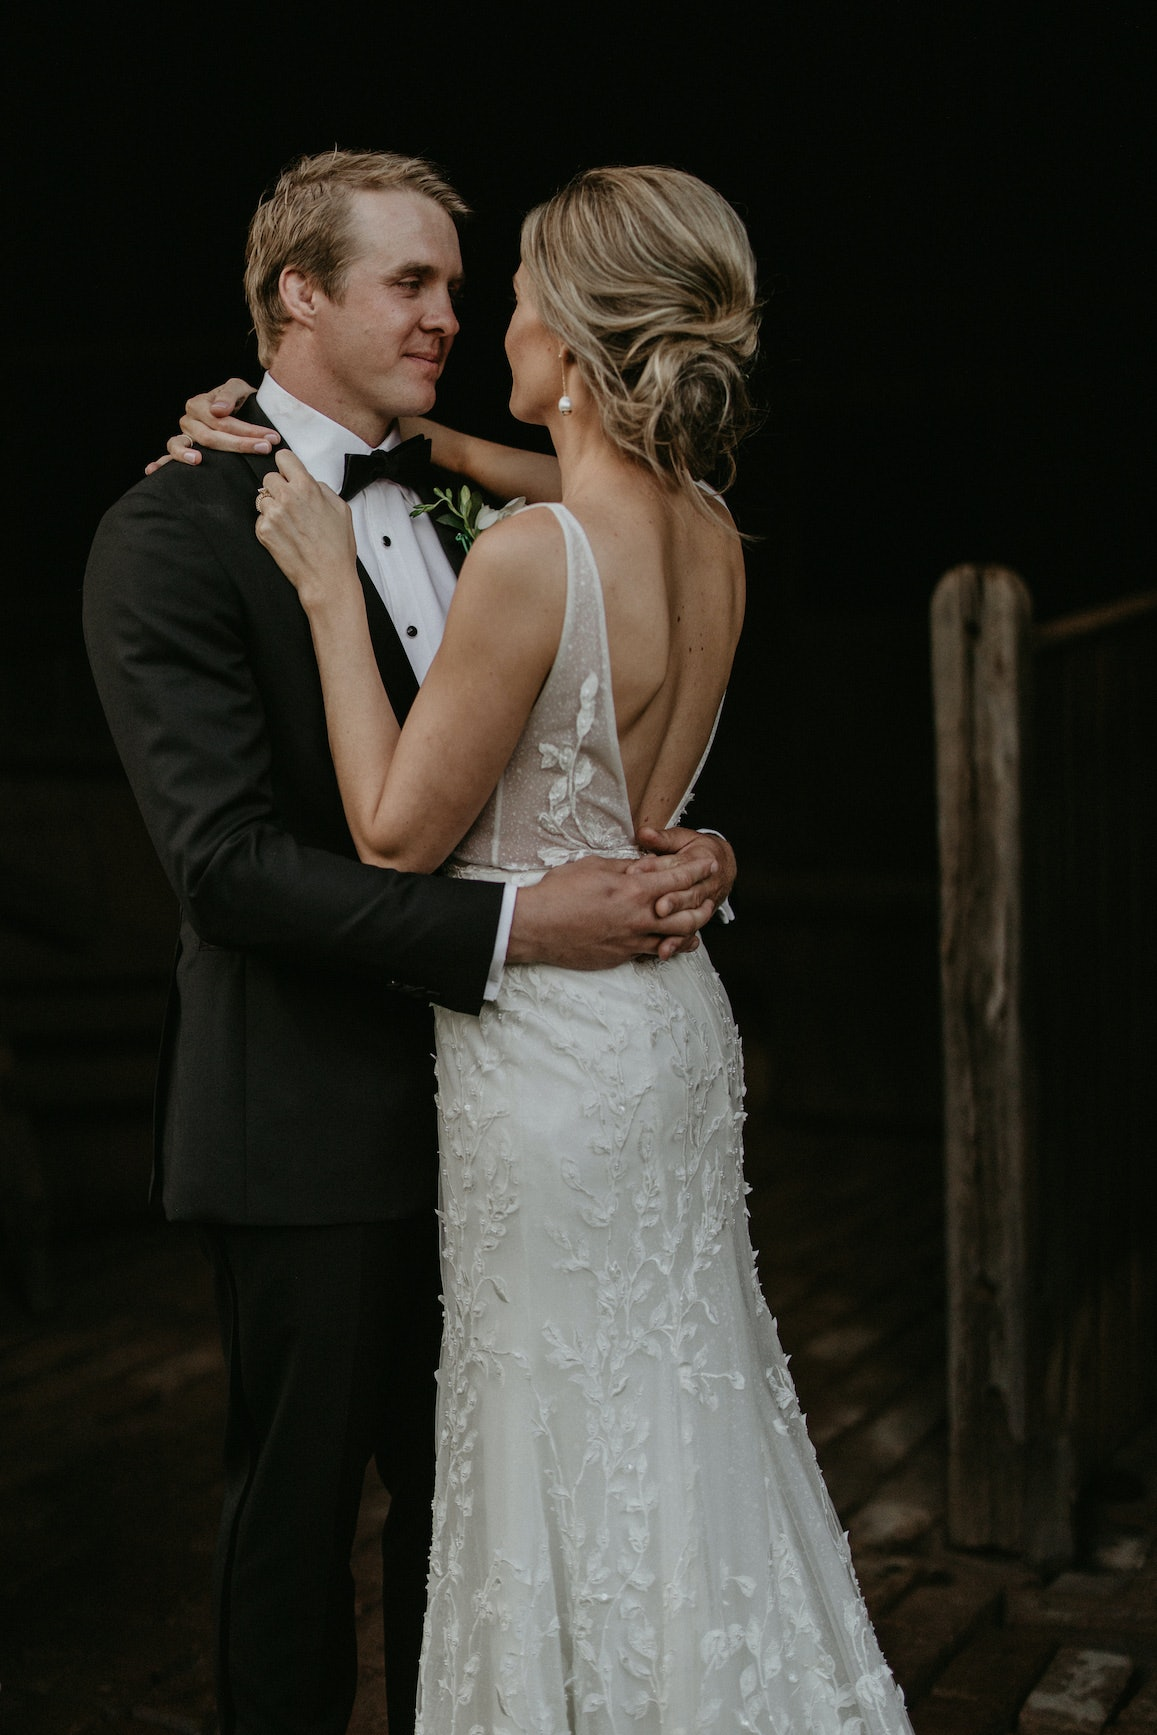 Bride and groom holding each other staring into each others eyes